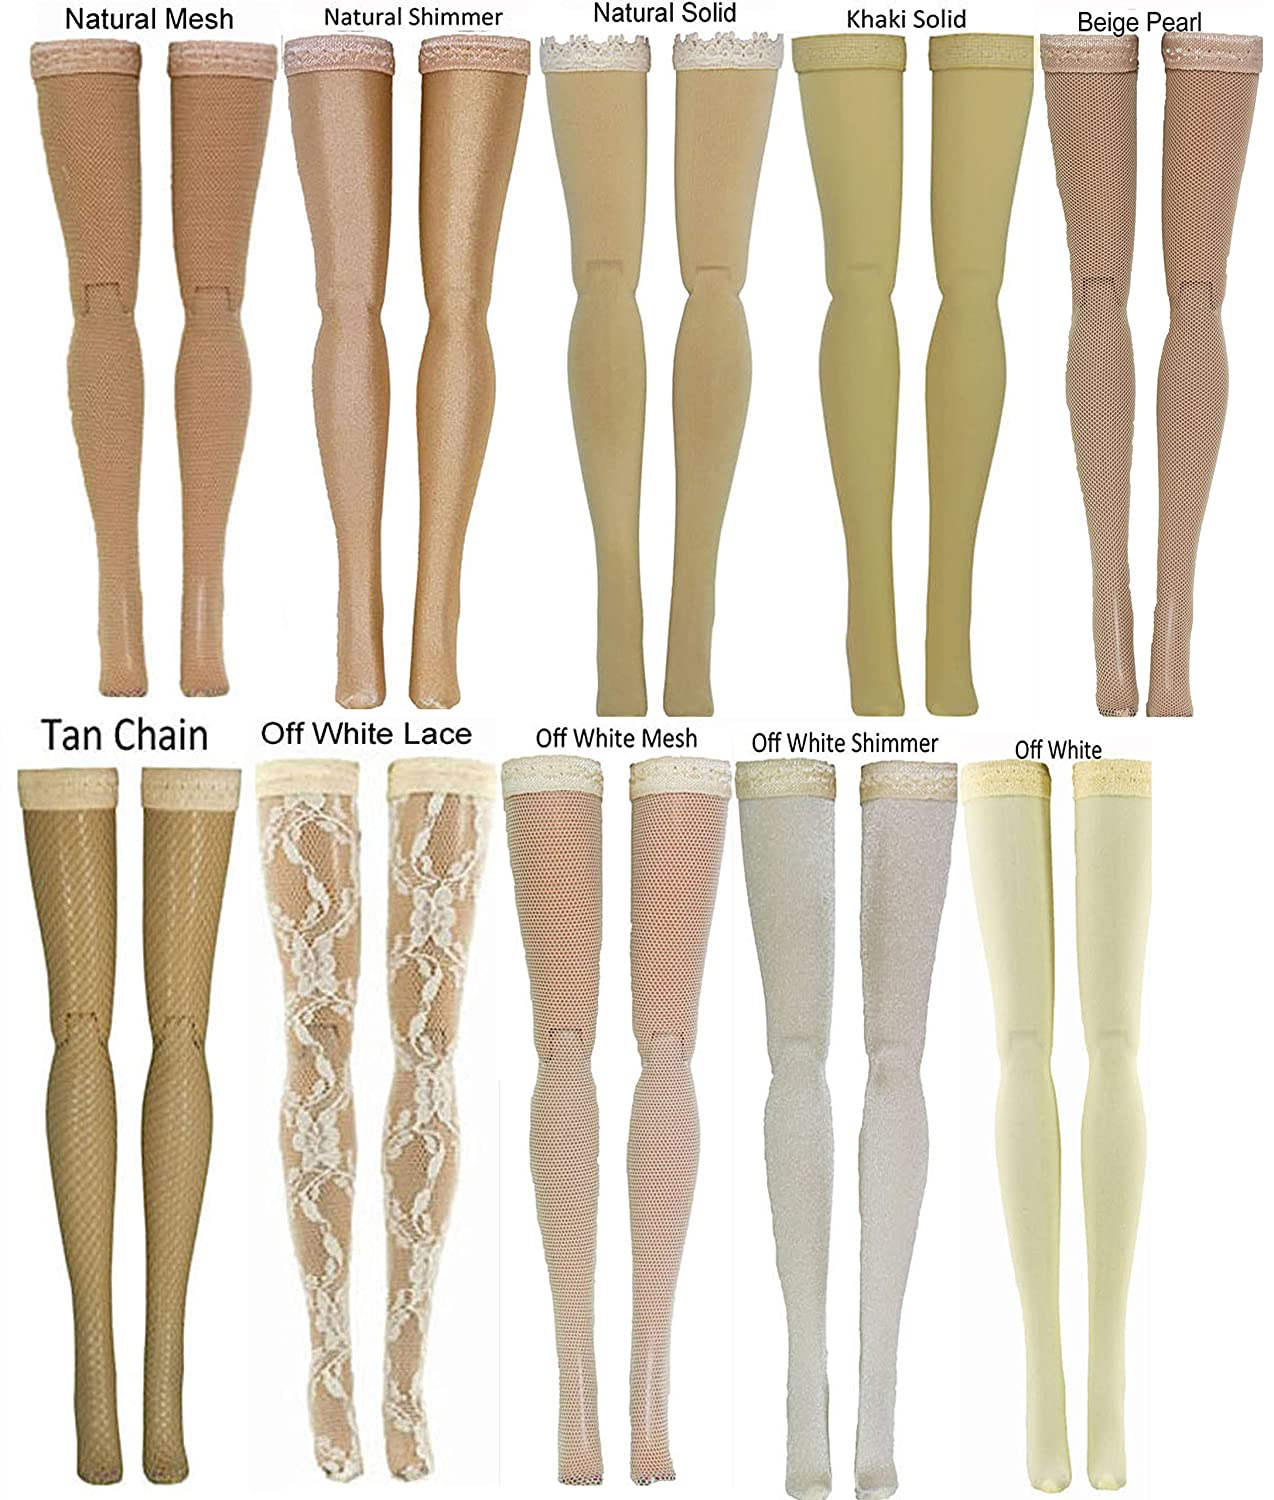 Beige Doll Stockings for Barbie - Francie - Skipper - Made to Move - Silkstone - Curvy - Tall - Petite